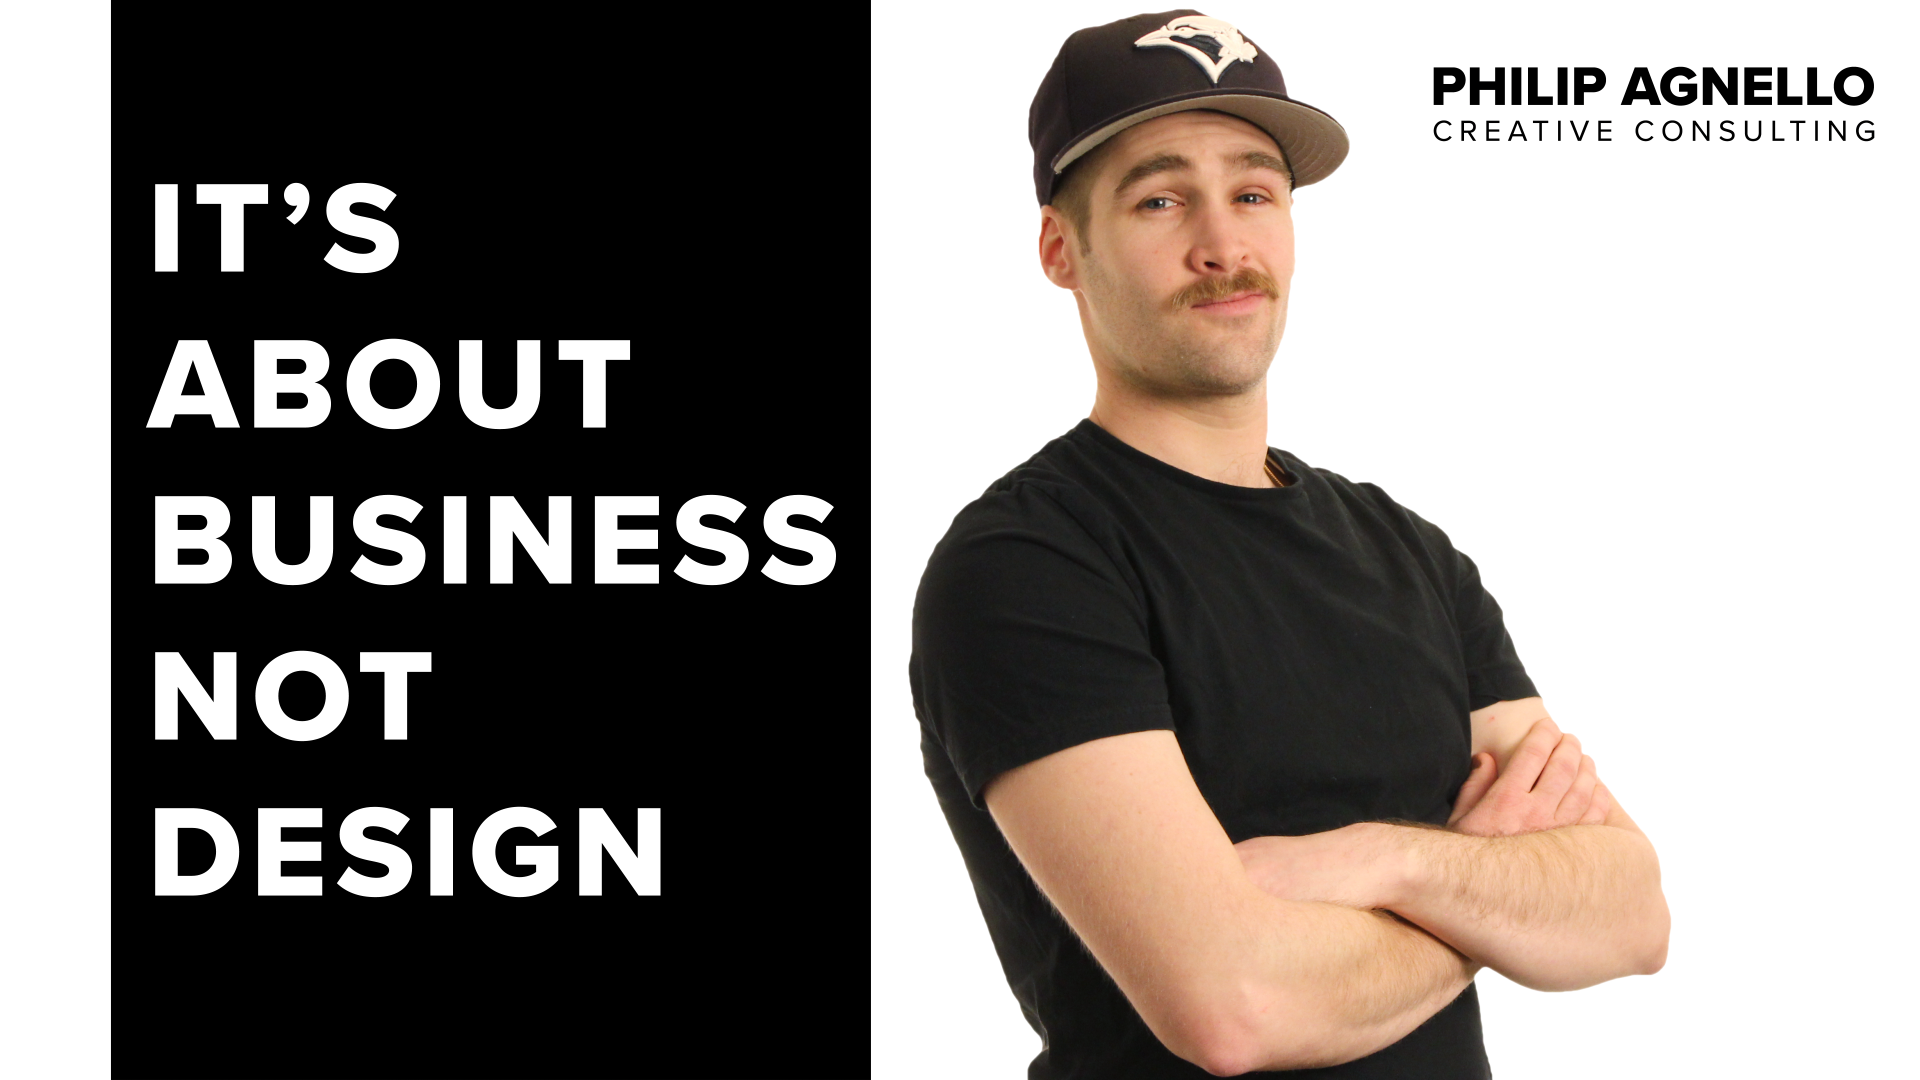 Title: It's About Business Not Design